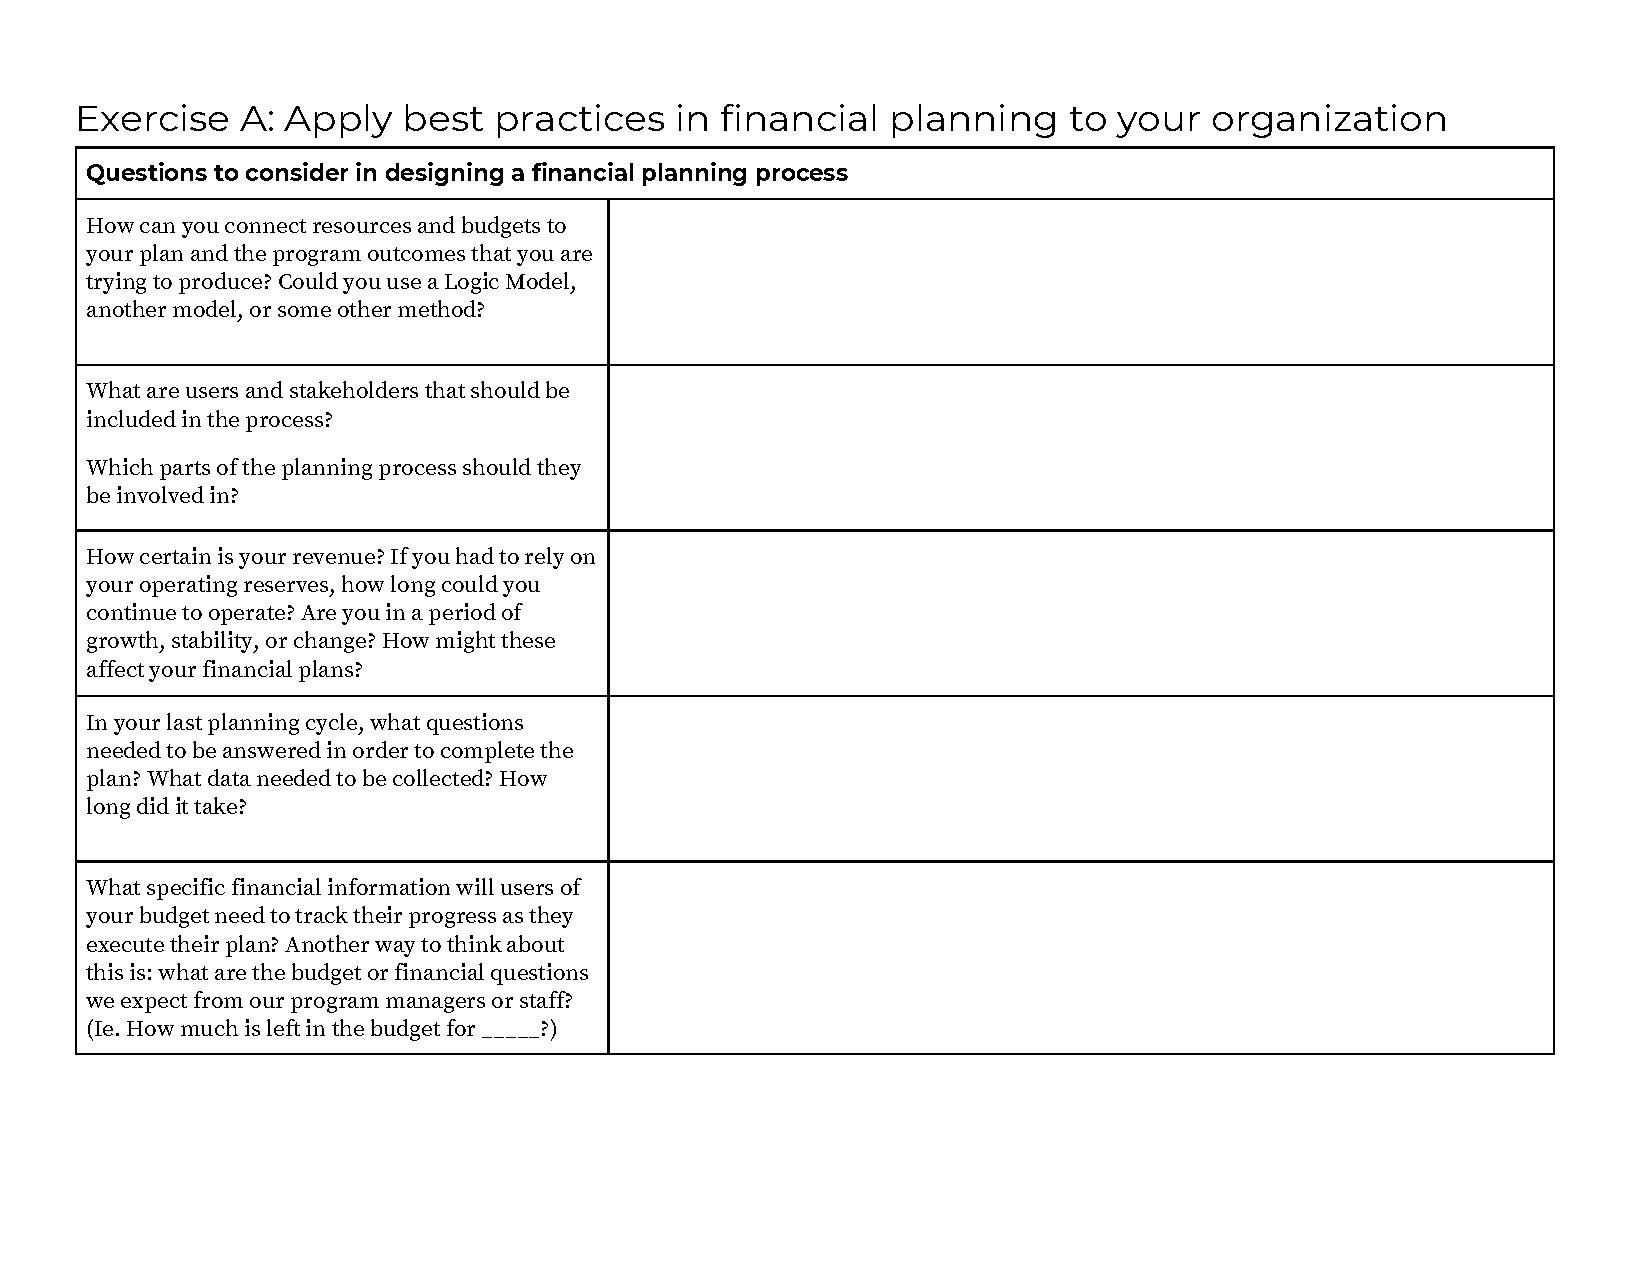 File Financial Planning For Your Organization Exercise Worksheet At Wmcon